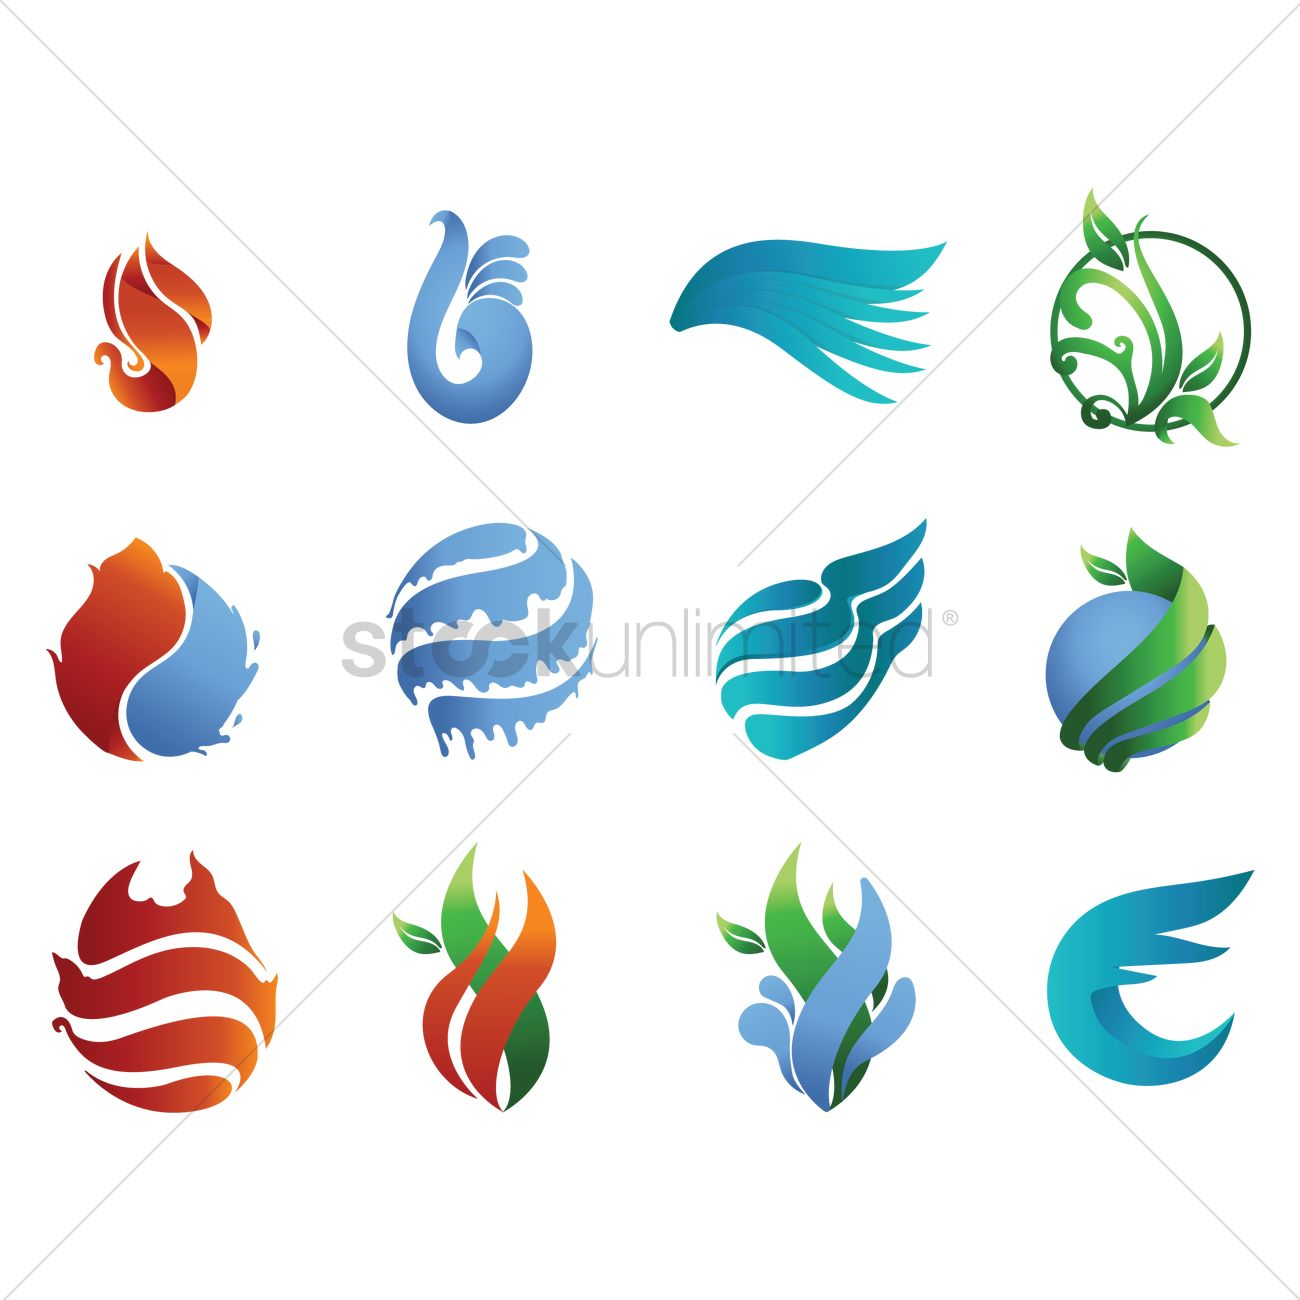 abstract icon design collection vector graphic